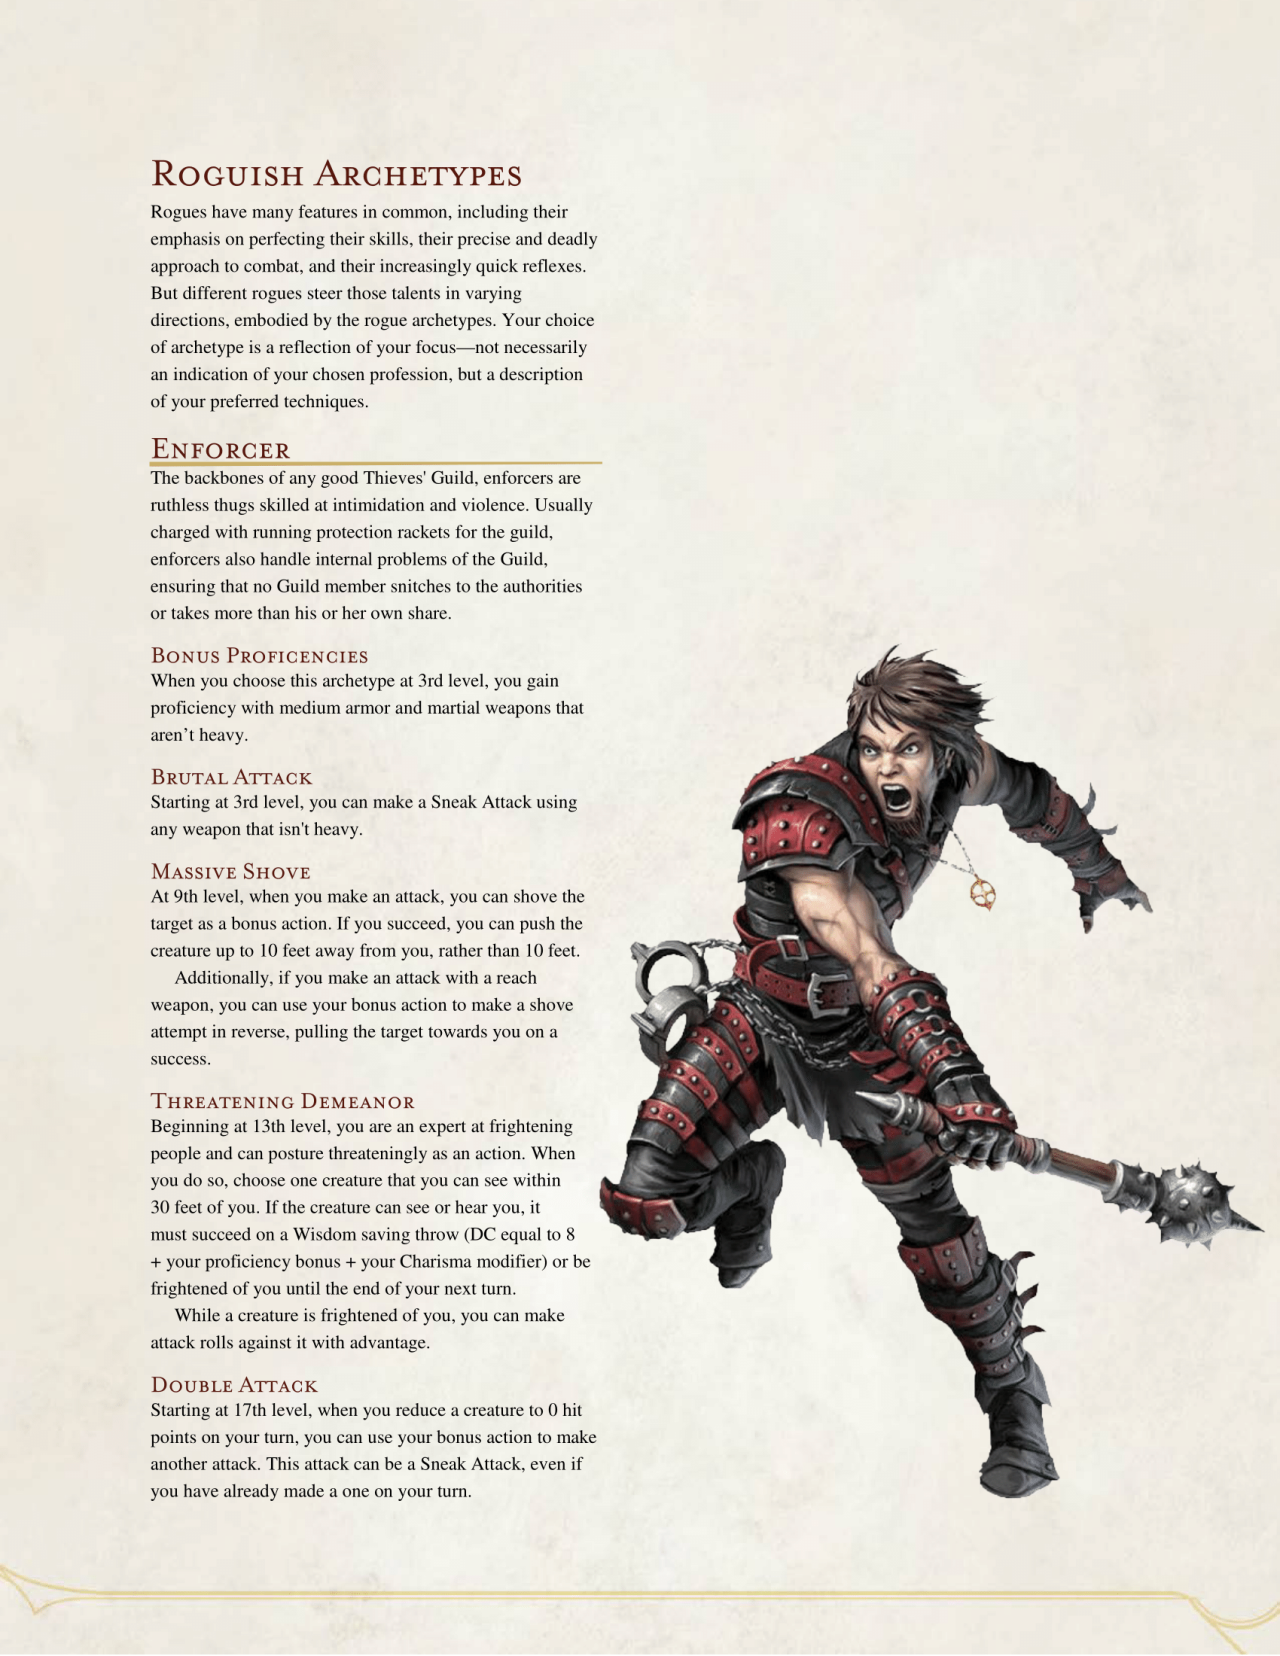 Dnd 5e Homebrew Enforcer Rogue By The Middlefinger Of Vecna Dnd 5e Homebrew Rogue Archetypes D D Dungeons And Dragons Certain monsters or characters may have abilities which make them resistant to fire damage or vulnerable to acid damage, for example. dnd 5e homebrew enforcer rogue by the